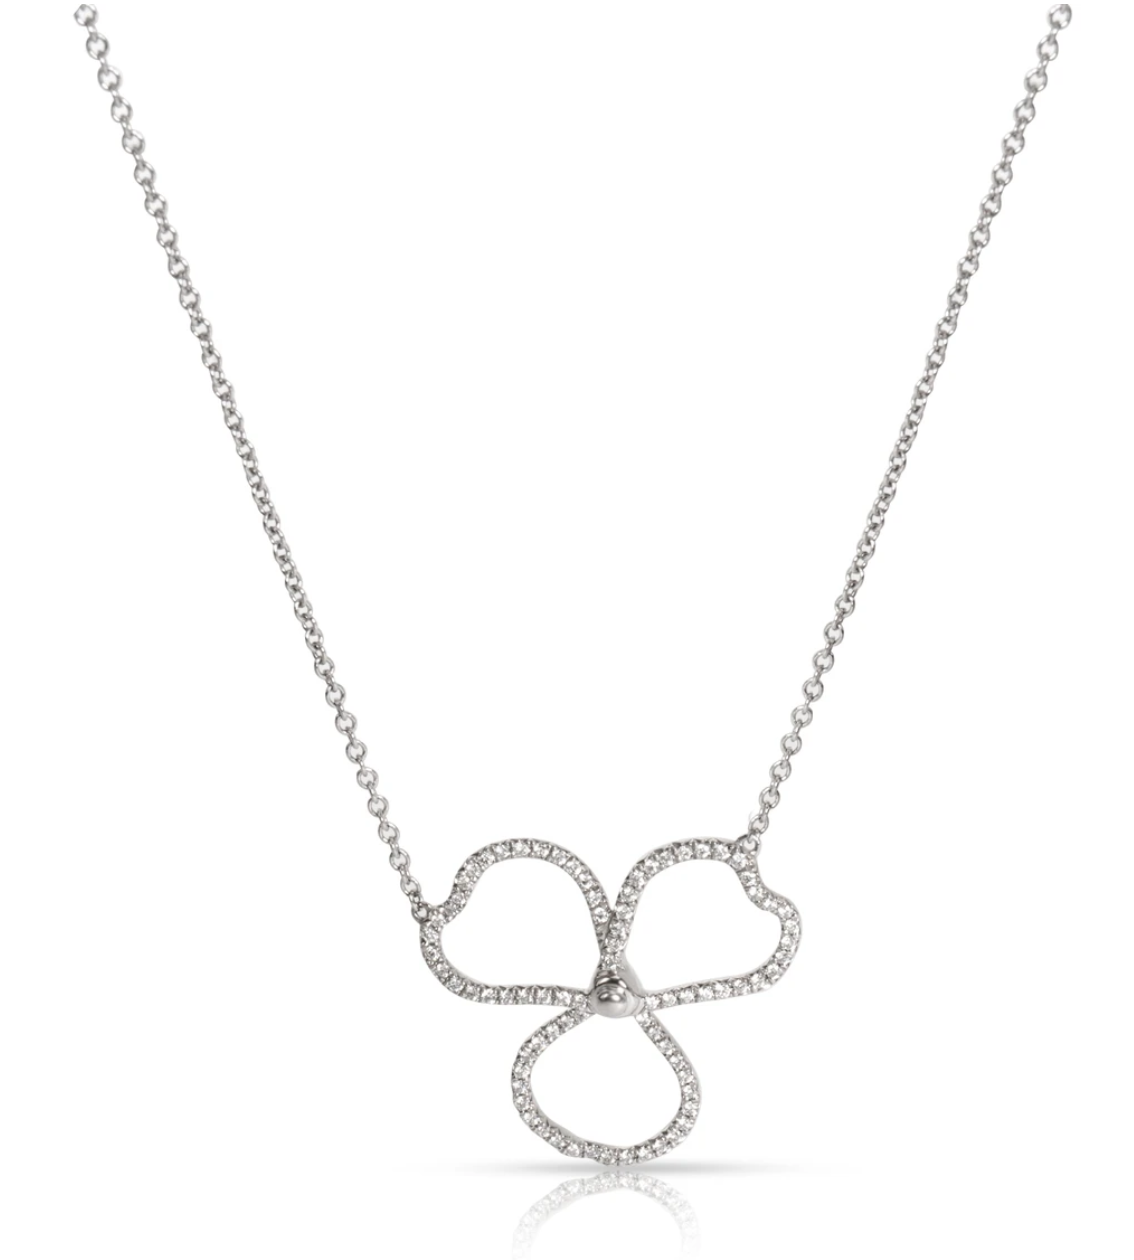 Tiffany & Co. Paper Flowers necklace